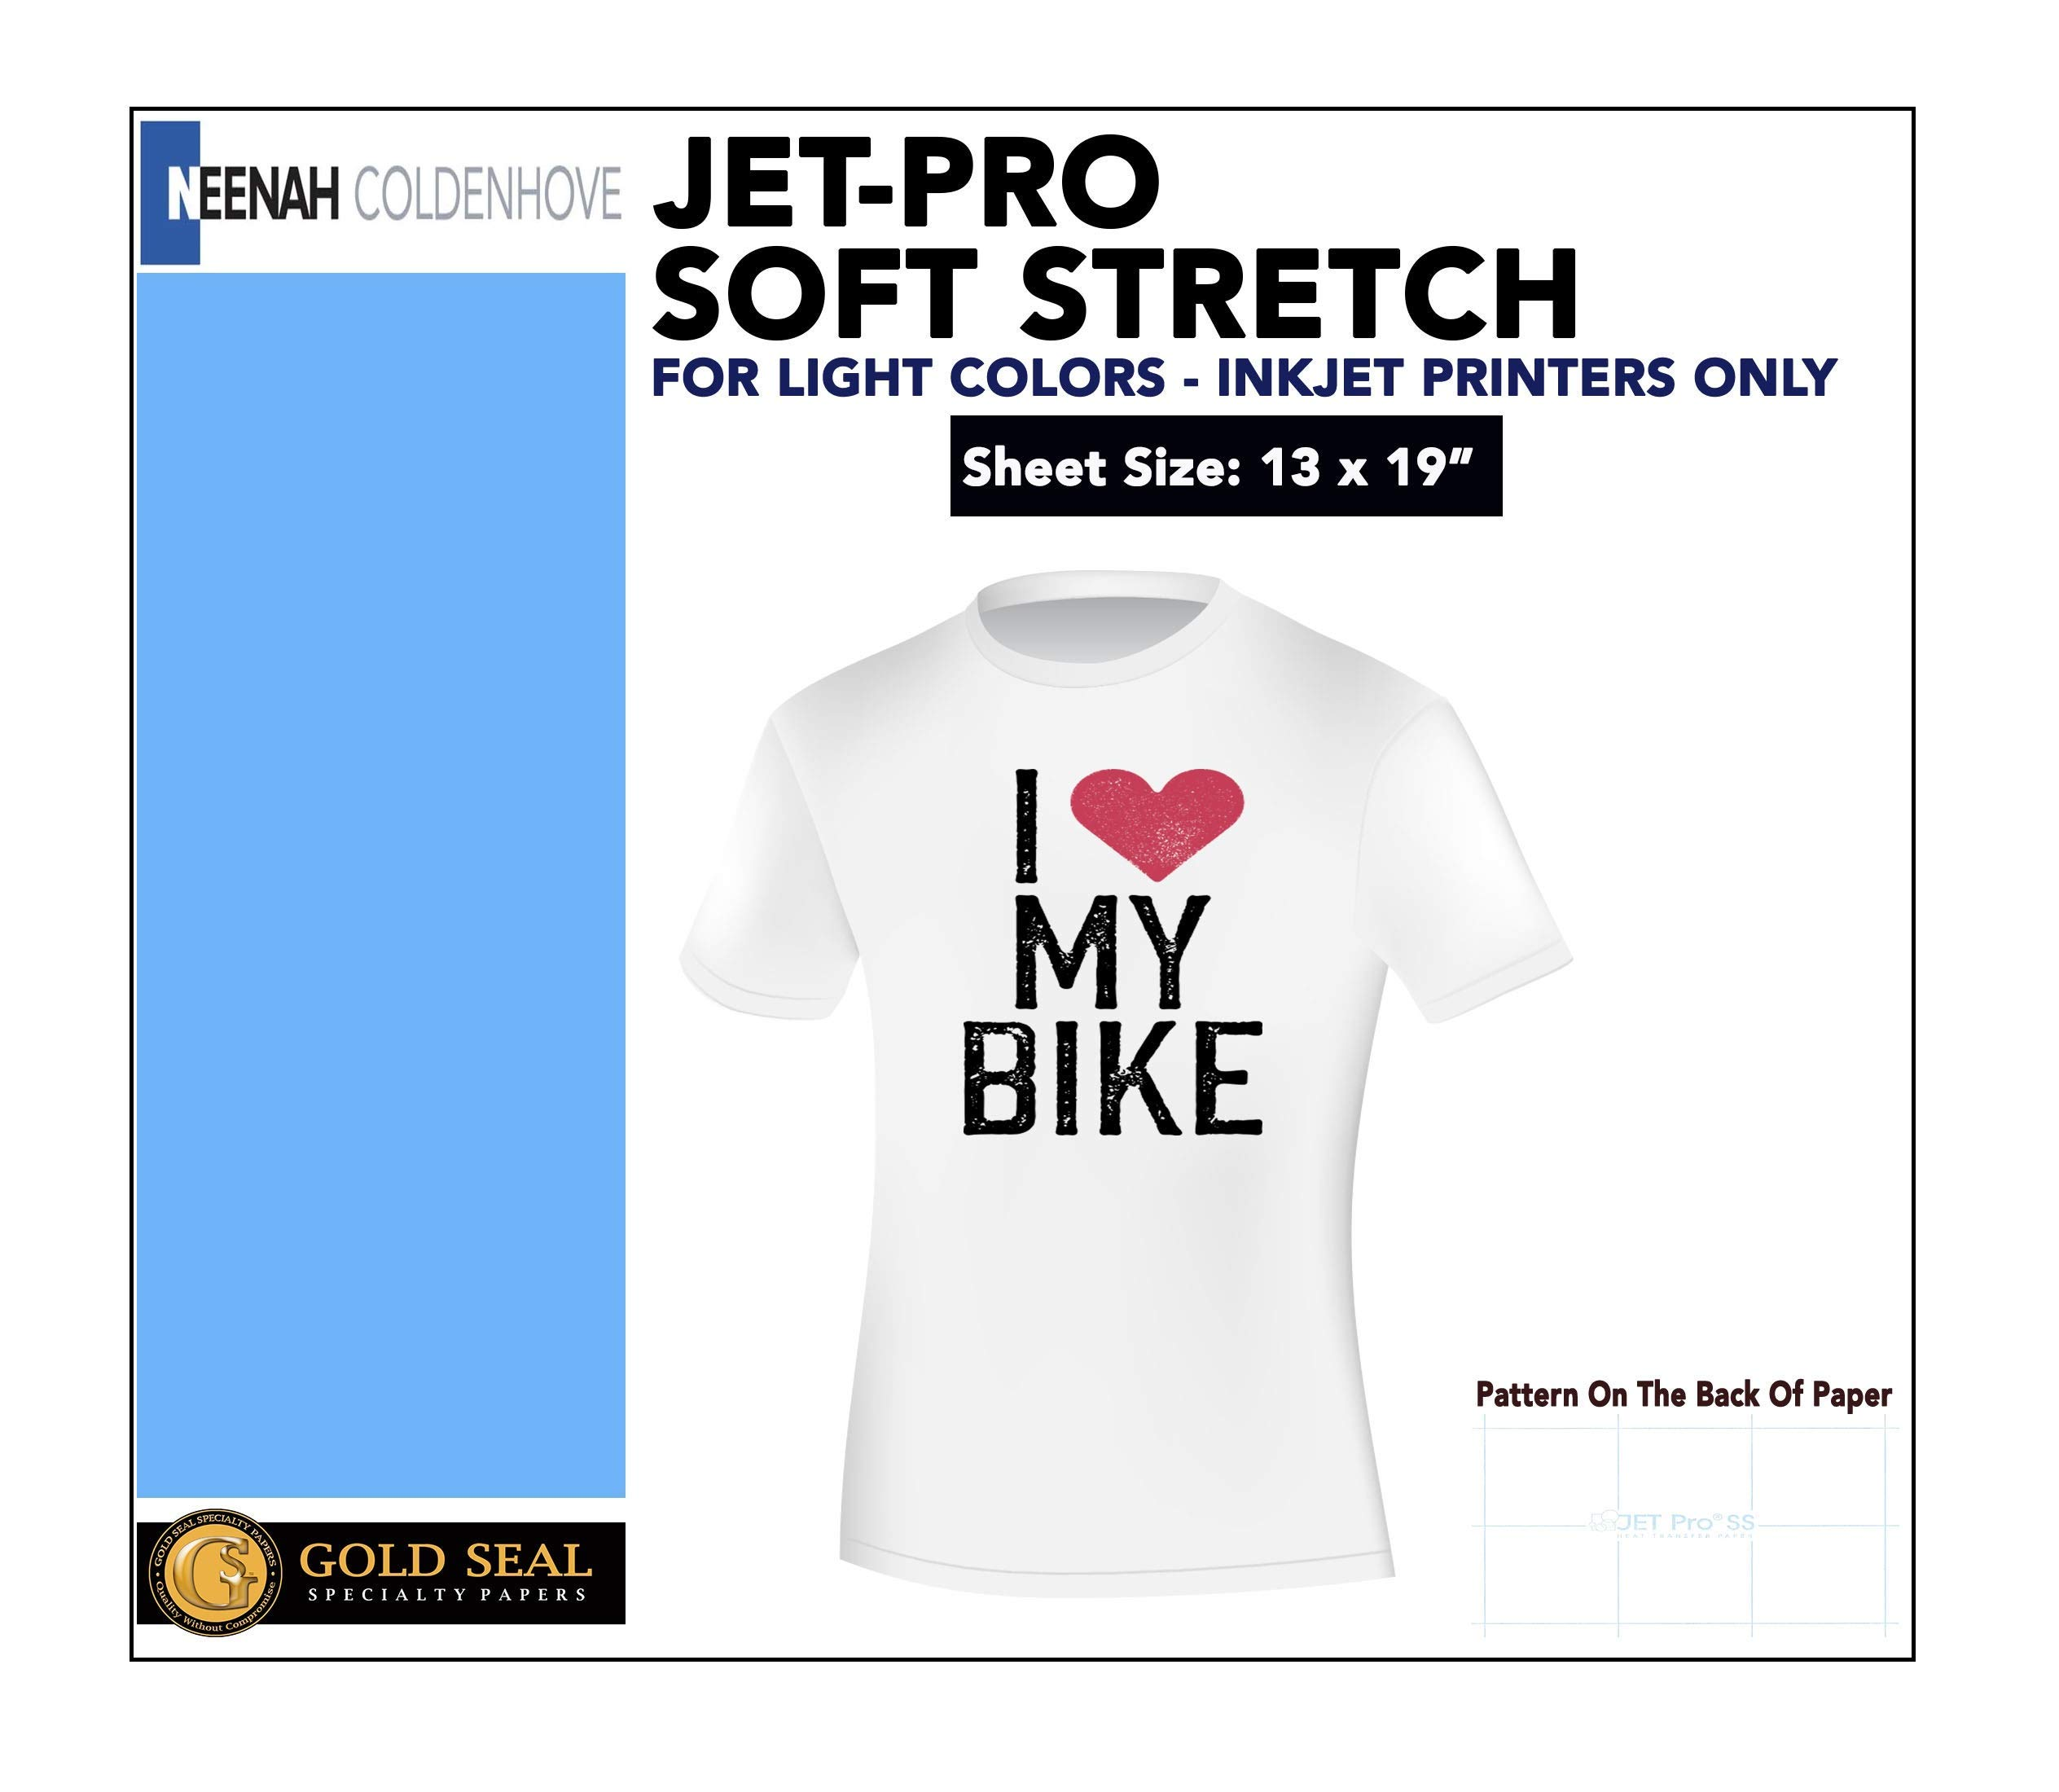 IRON ON HEAT TRANSFER PAPER JET-PRO SS SOFSTRETCH 13 x 19'' CUSTOM PACK 100 SHEETS by Gold Seal Specialty Papers